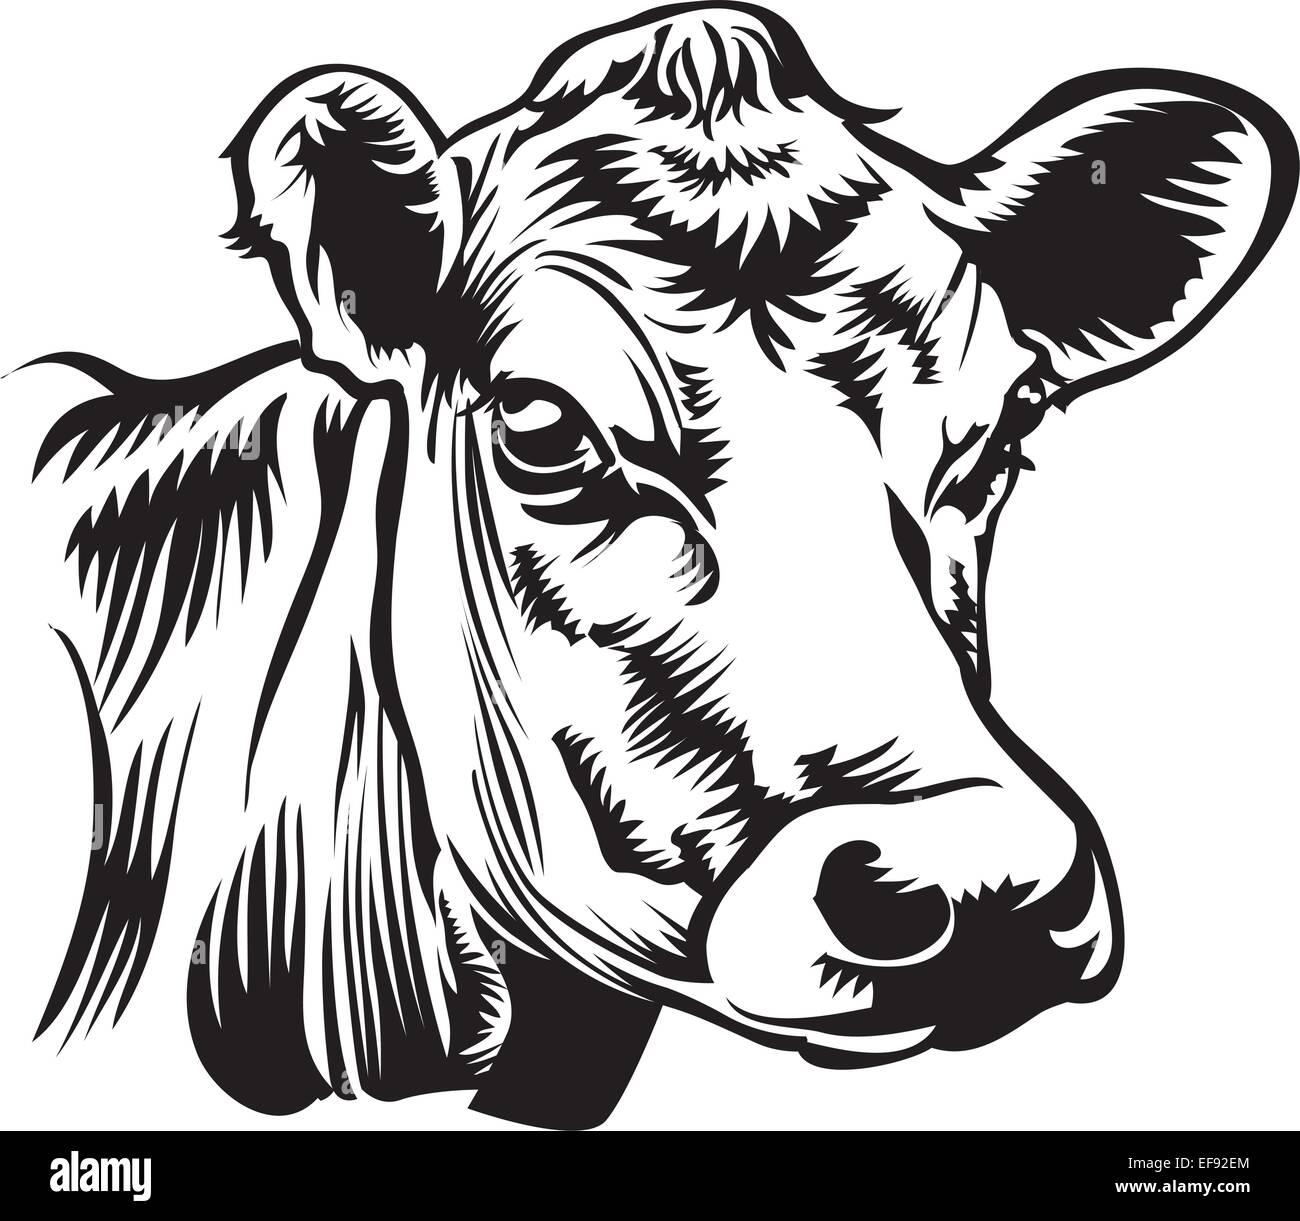 A Cow S Head Stock Vector Art Amp Illustration Vector Image